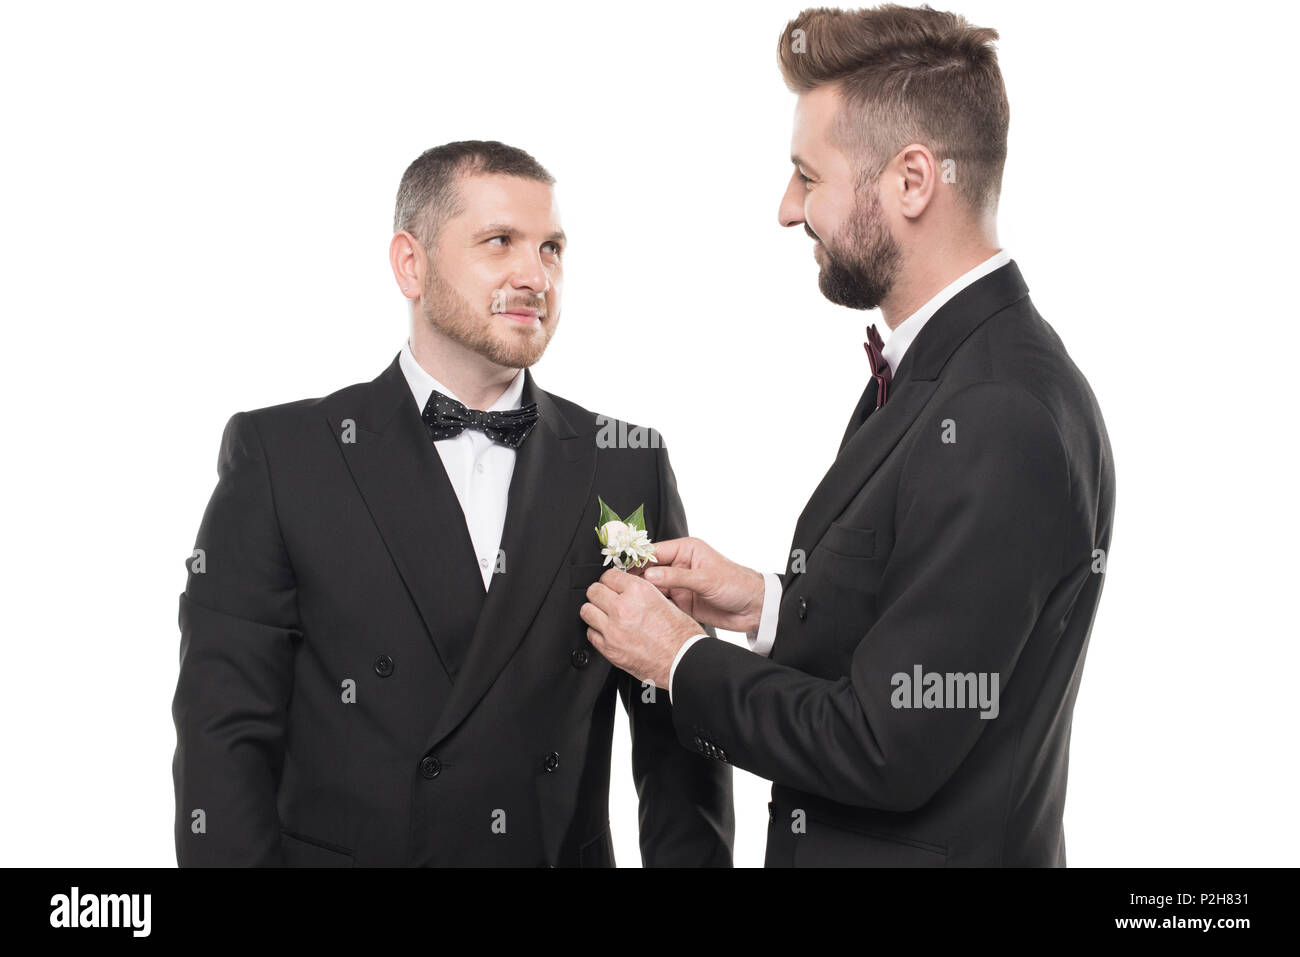 couple of grooms in tuxedos preparing to wedding day isolated on white - Stock Image